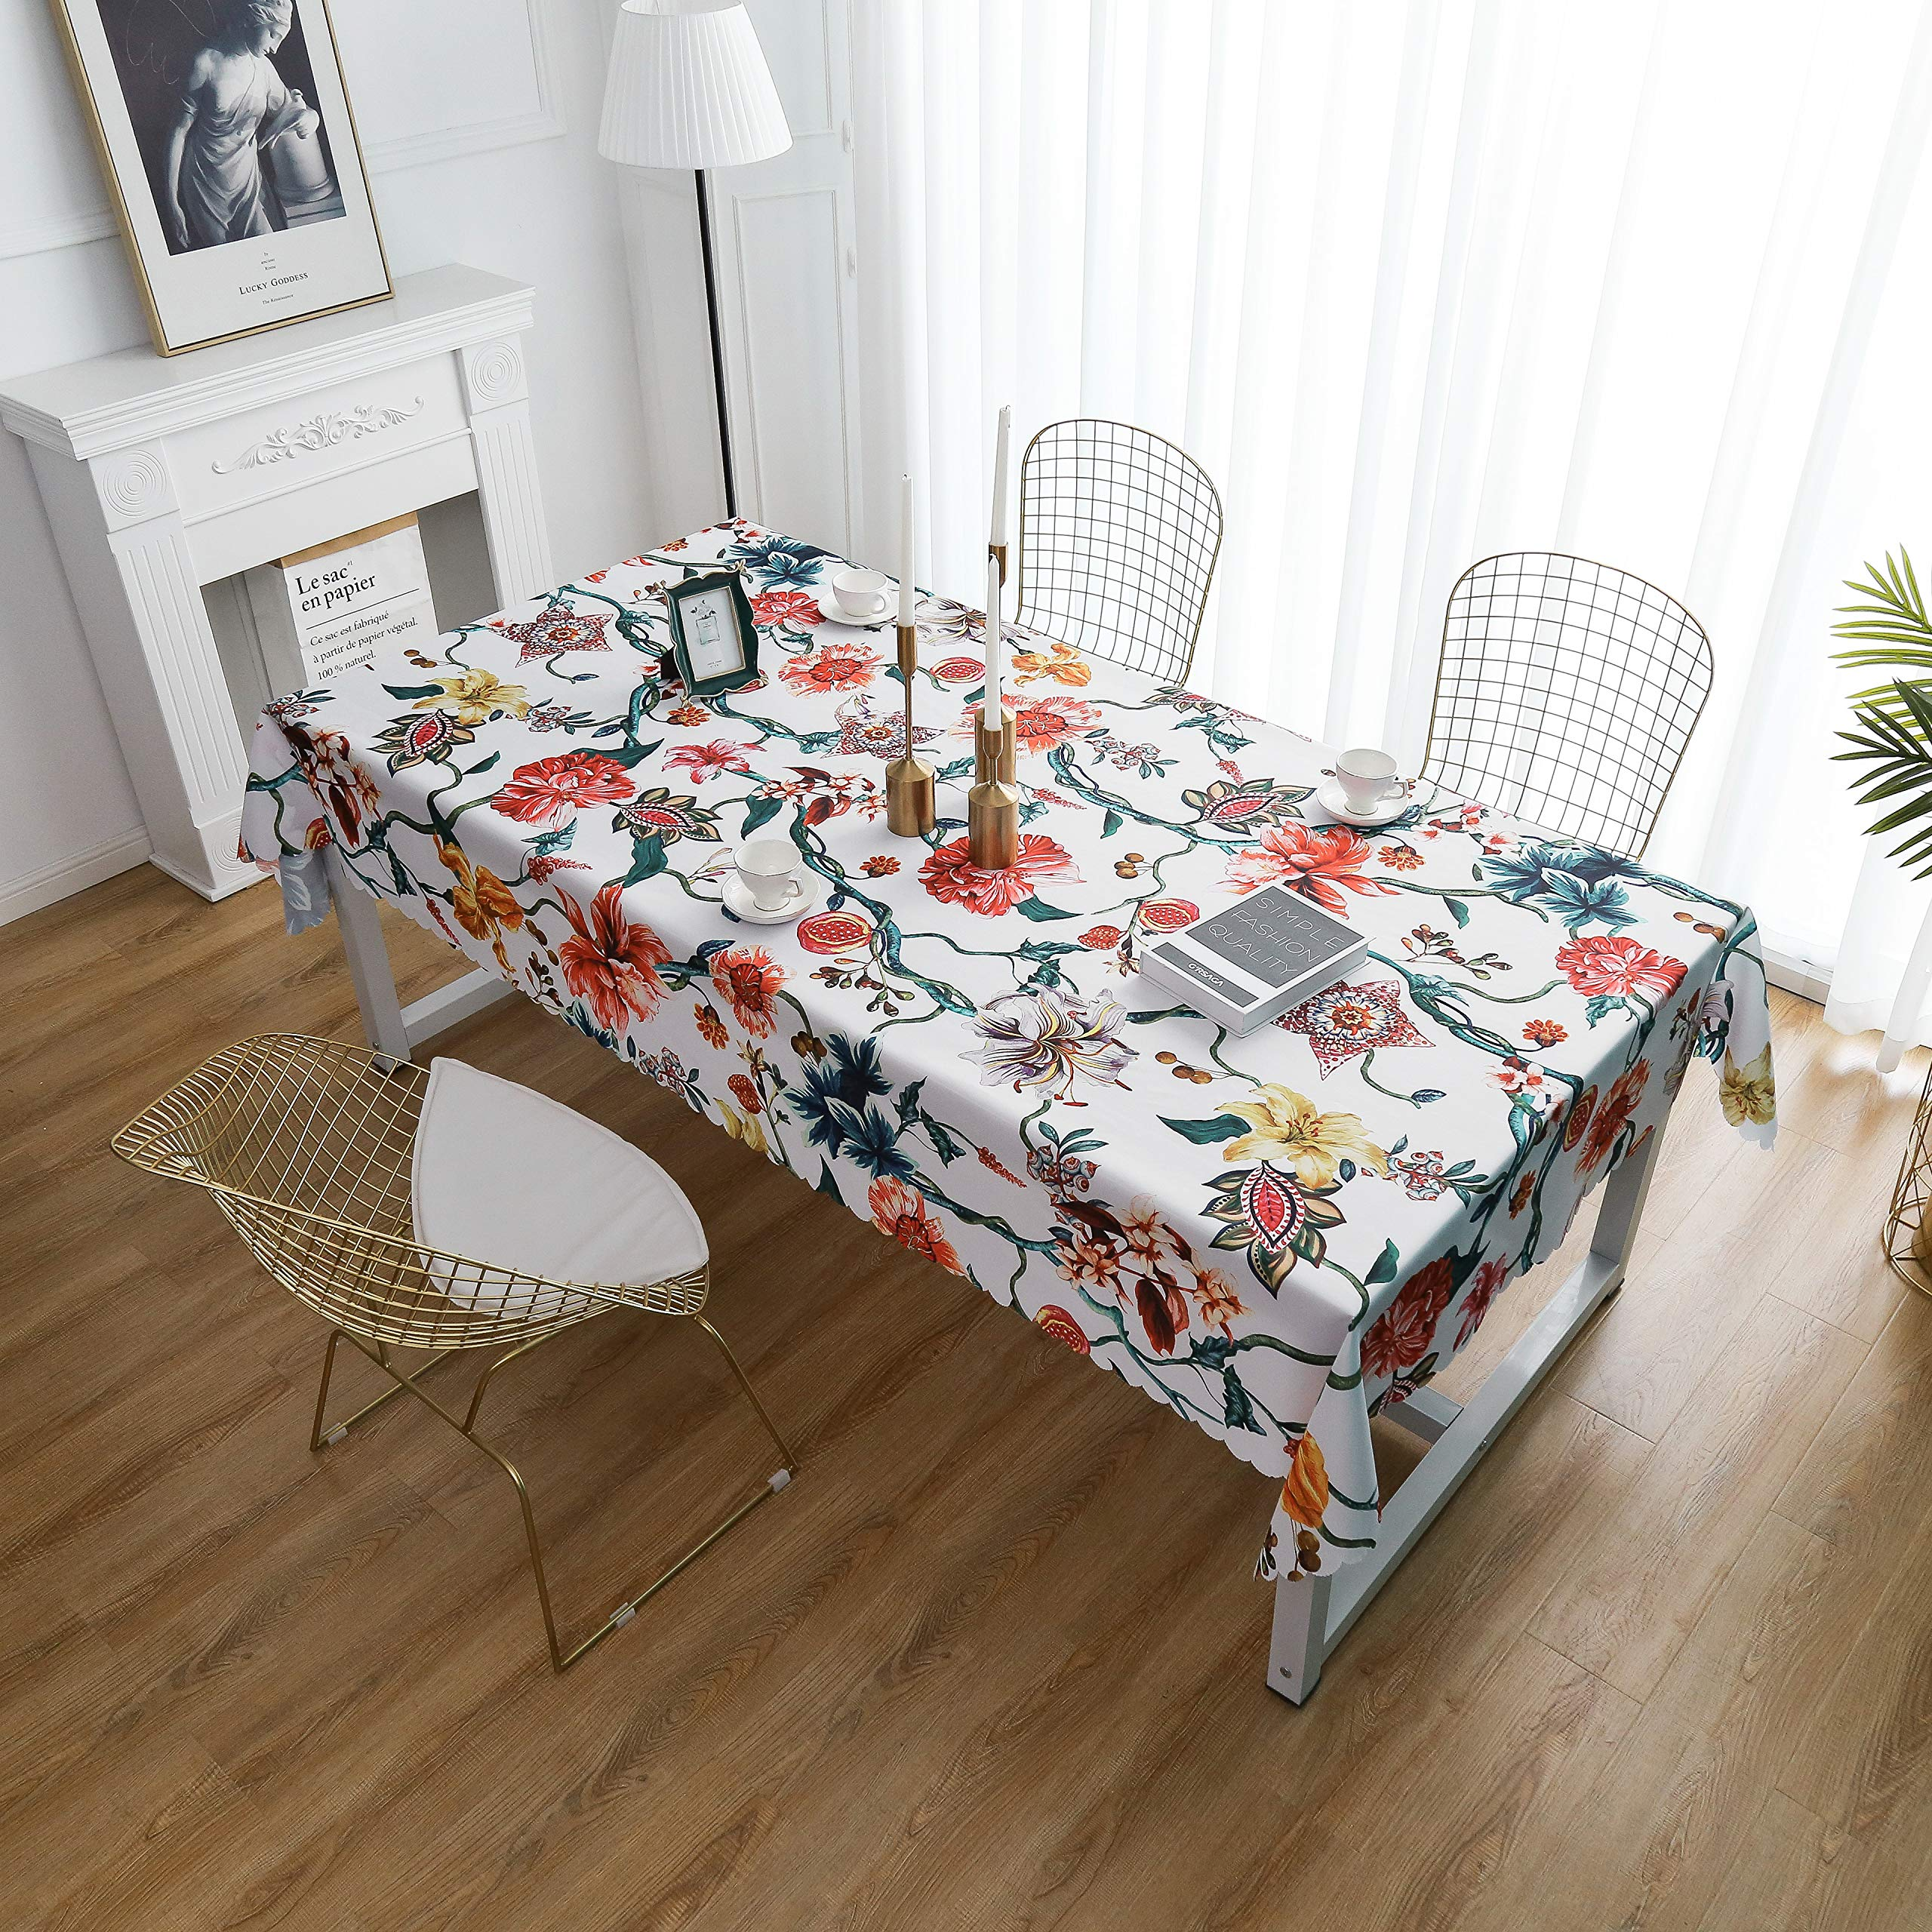 """iLiveX Tablecloth, Original Design Hand Drawing Art Print Table Cloth, Water-Proof Rectangle Table Cover, Kitchen Dining Indoor Outdoor Buffet Tabletop Decoration, 60""""x84"""" (Flower Vine)"""